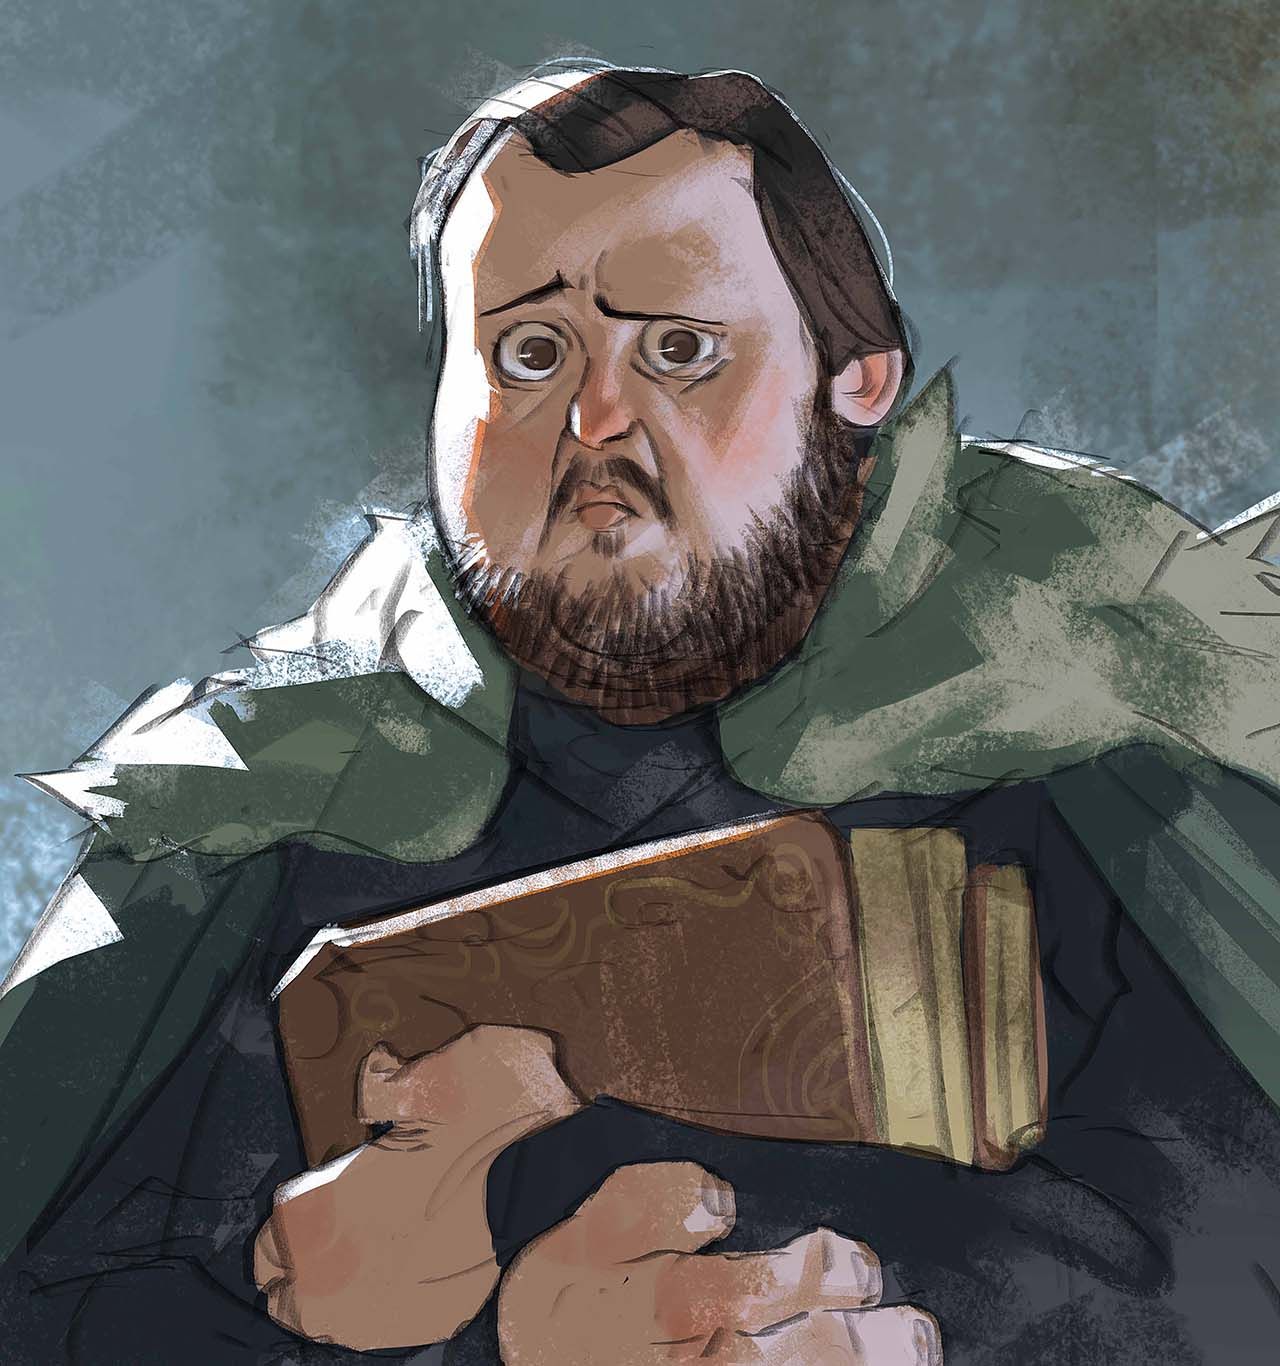 Artist Creates Unique Character Arts From Game Of Thrones – Samwell Tarly Character Art By Ramón Nuñez